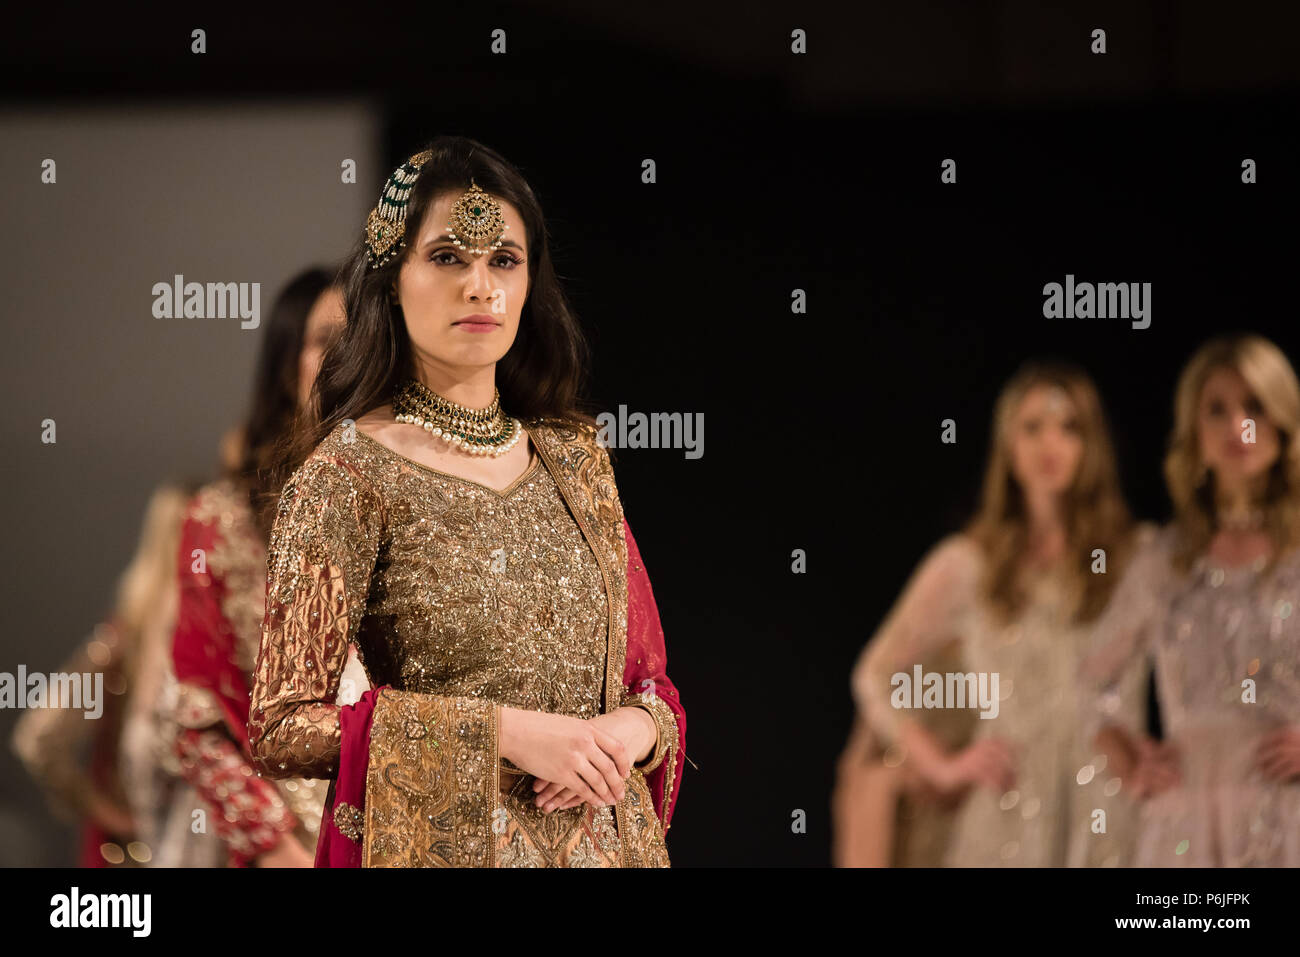 Pakistan Fashion High Resolution Stock Photography And Images Alamy